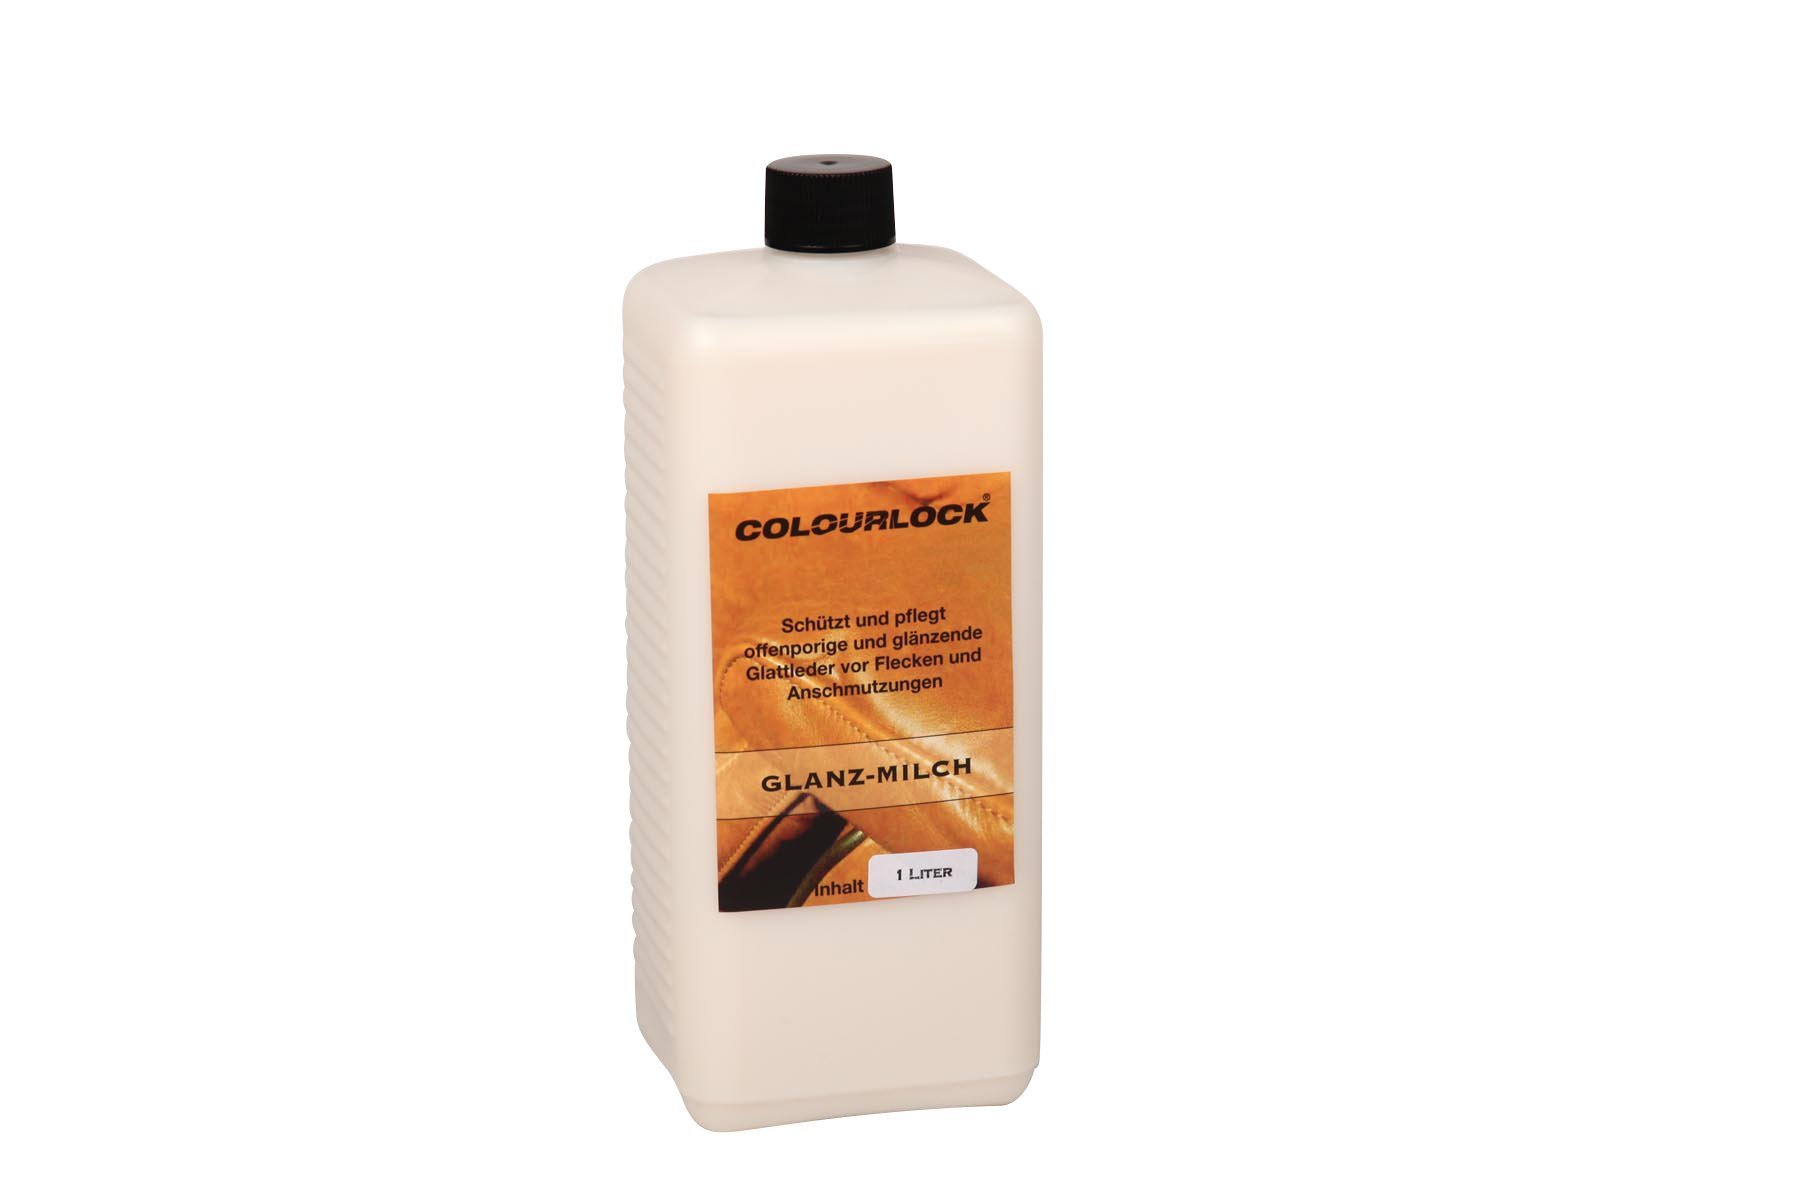 Colourlock Gloss Cream for Glossy Aniline Leather and Coated Leather to Care, Protect and Waterproof Aniline, Waxed, Oily or Pull up Leathers on Furniture, Shoes, Jackets, Bags and Garments 1 Litre